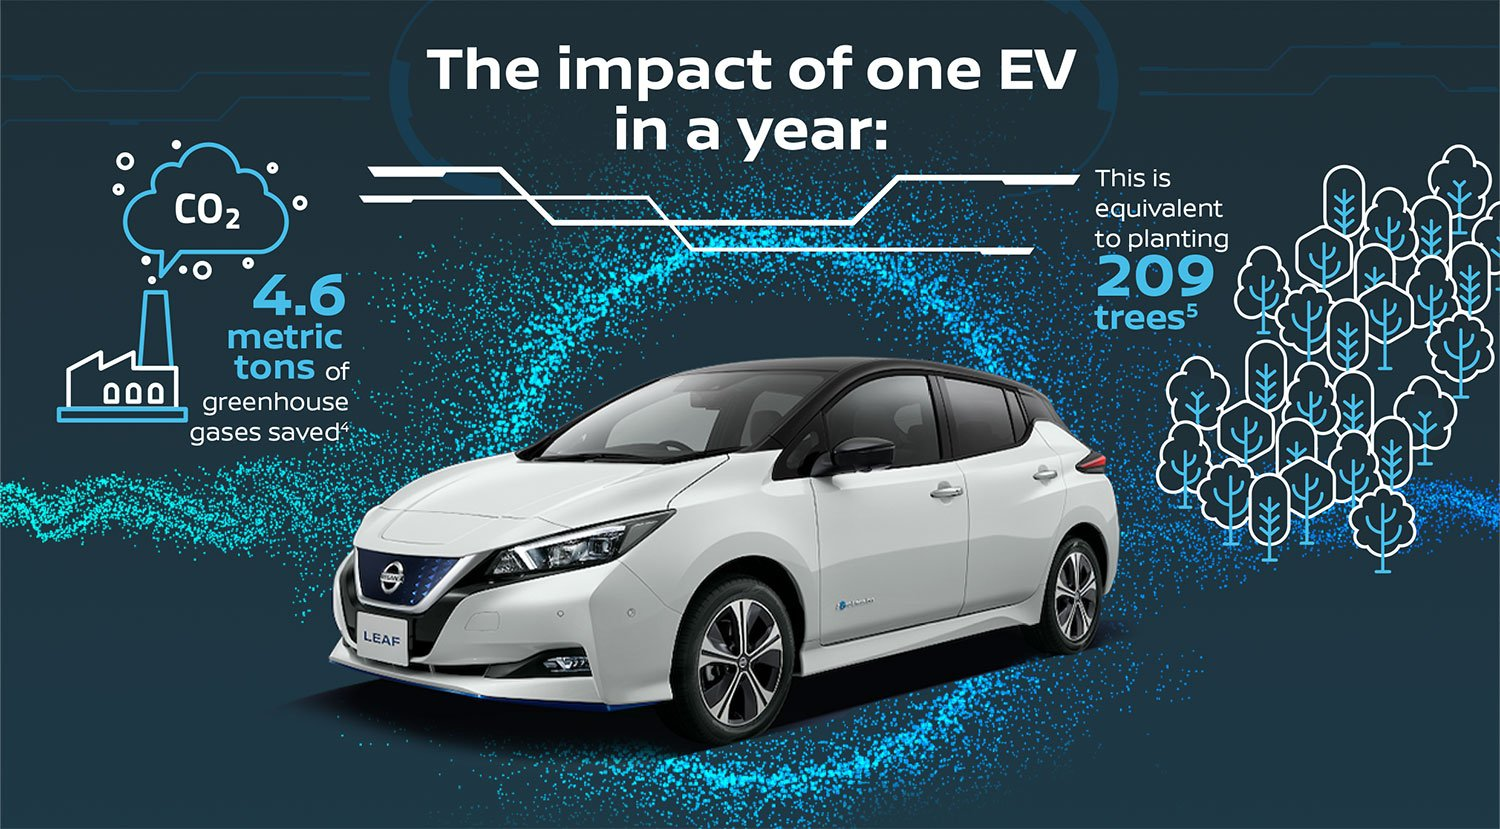 Nissan shows how electric vehicles can help  fight escalating air pollution